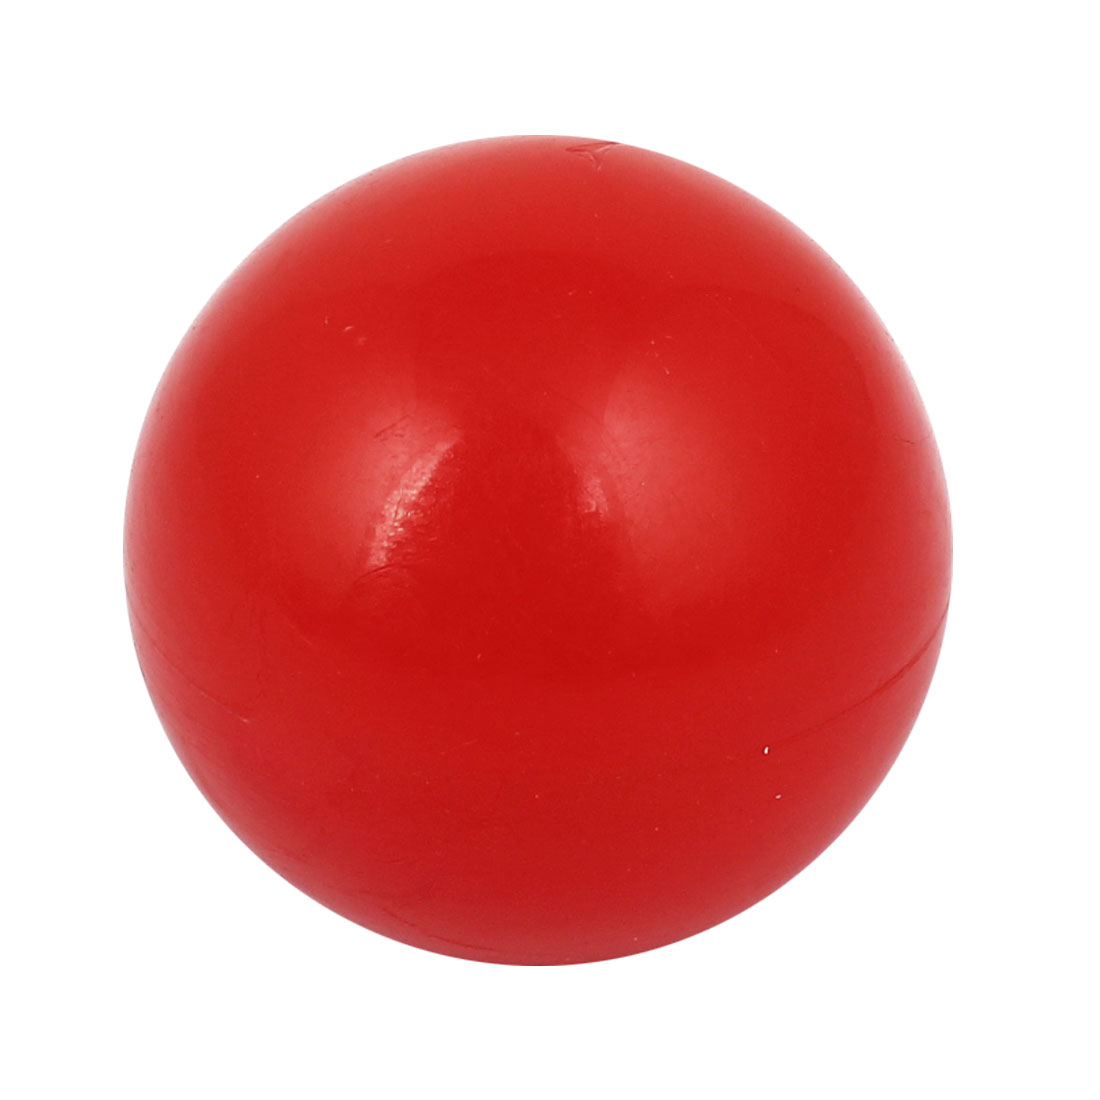 M9 x 25mm Female Thread Red Round Plastic Lever Ball Knob 31mm Diameter